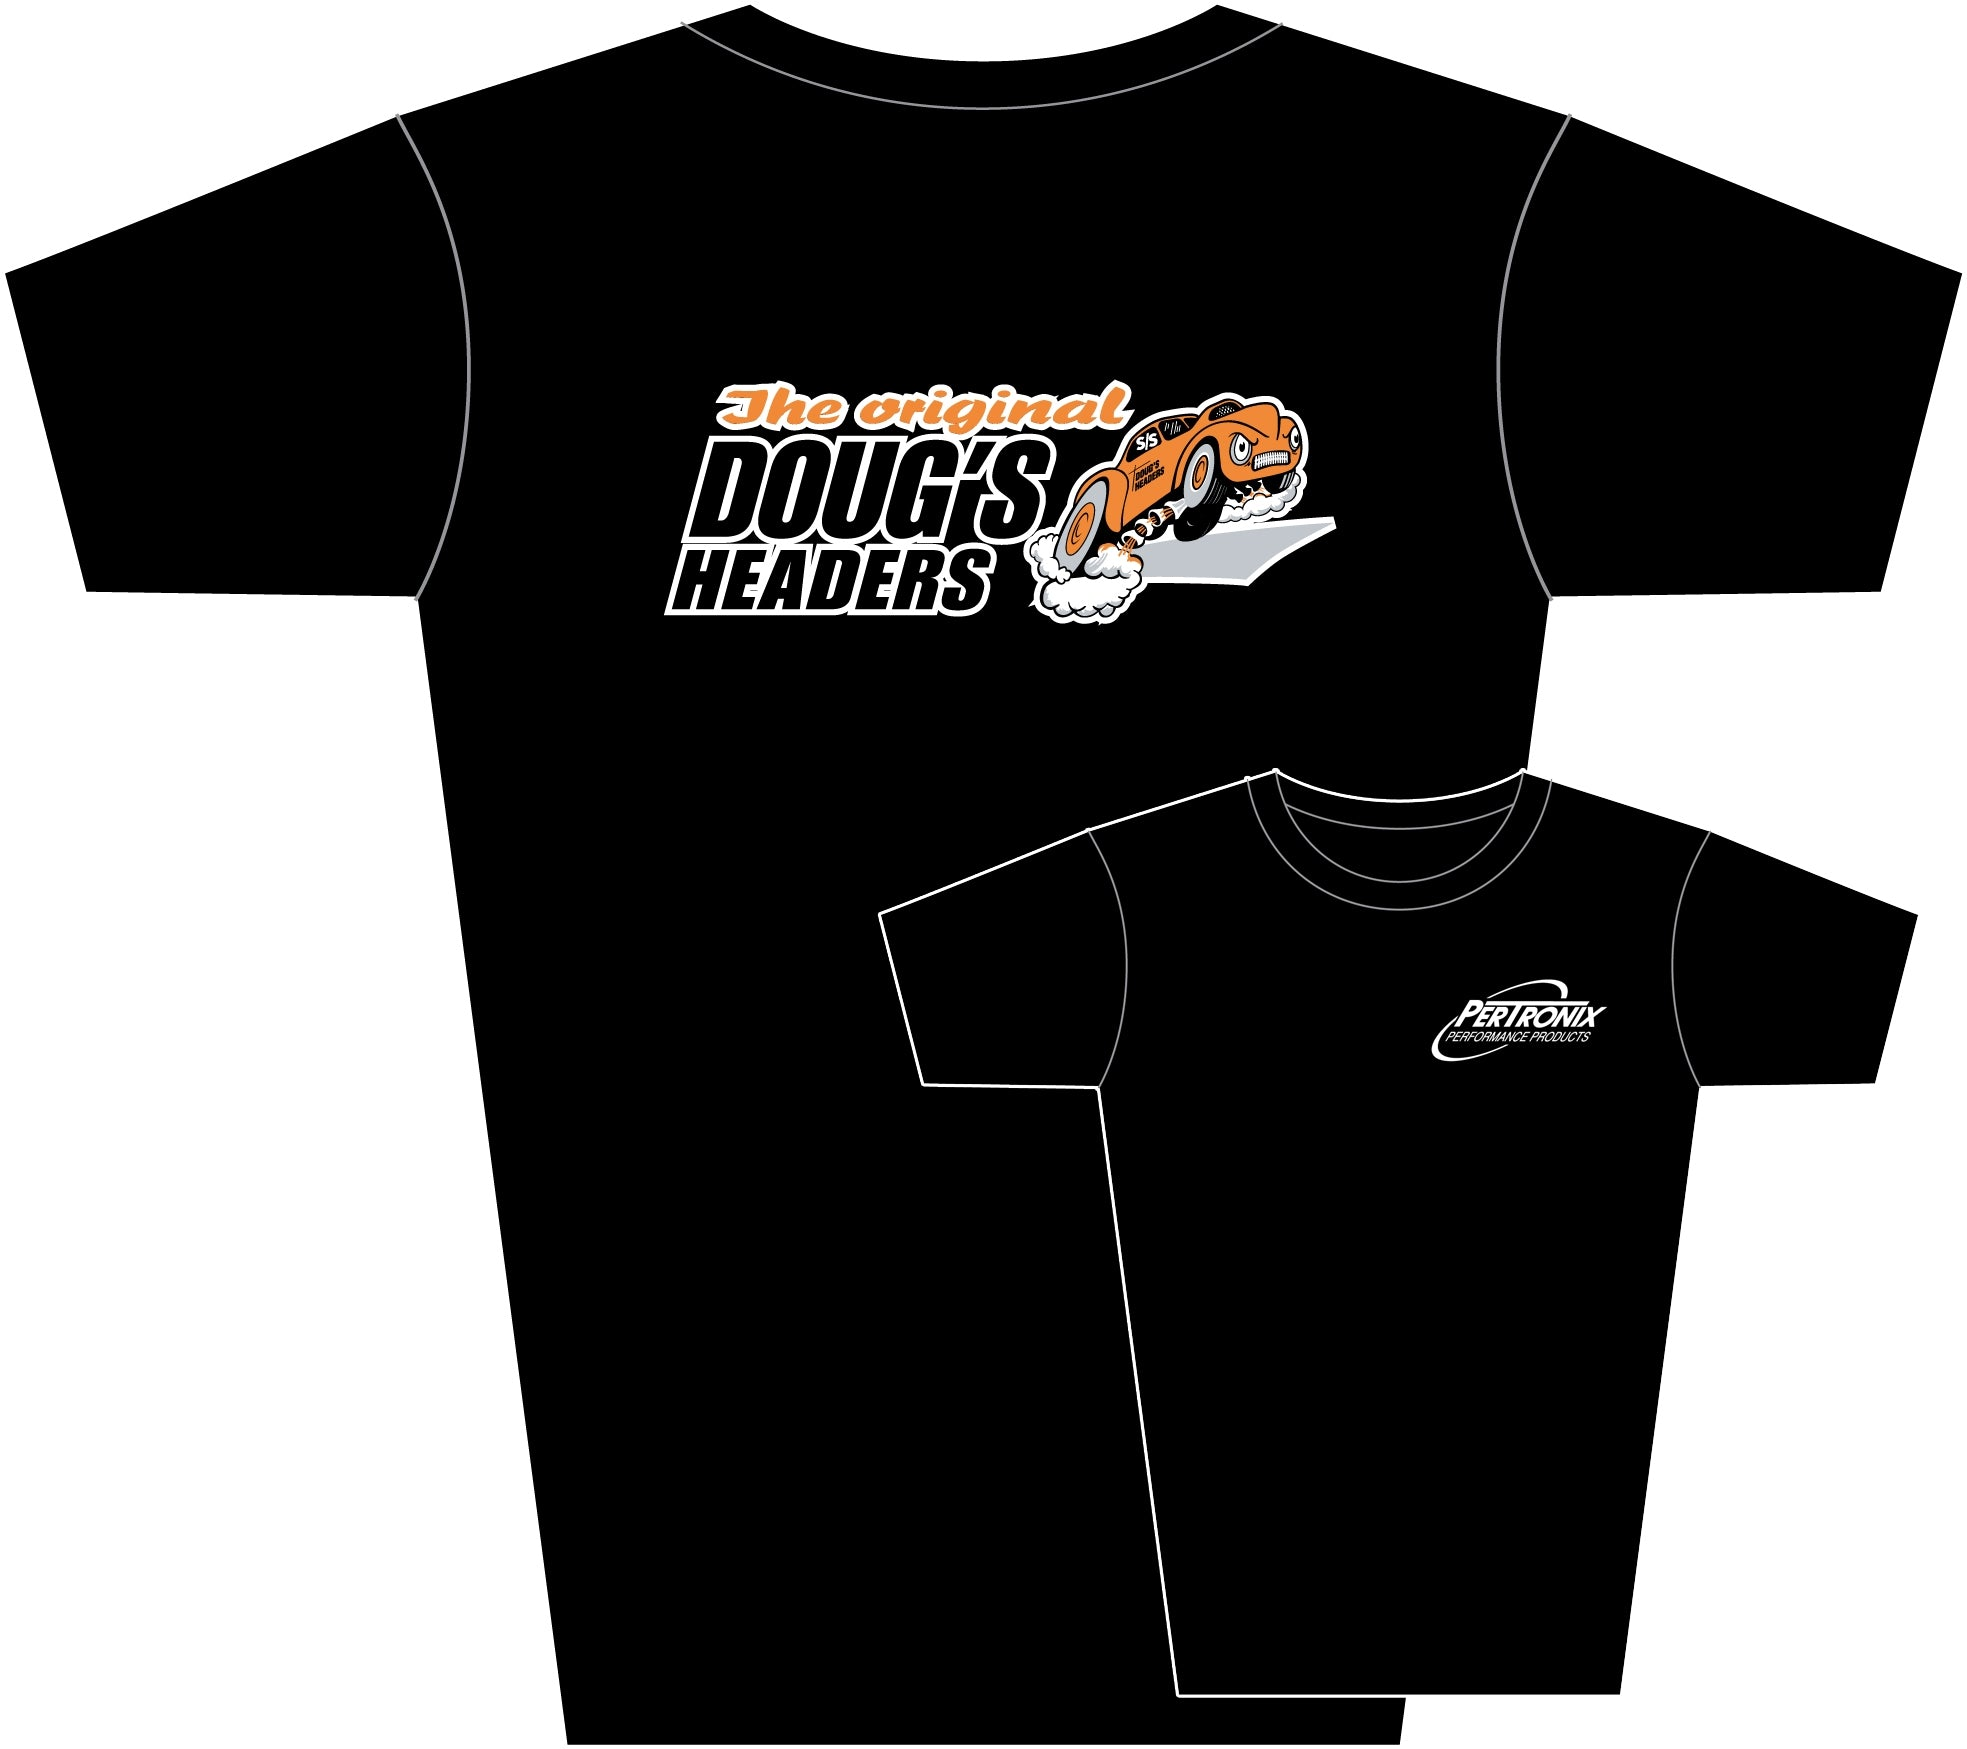 Doug's Headers TS205 Tee Shirt Black XXXL